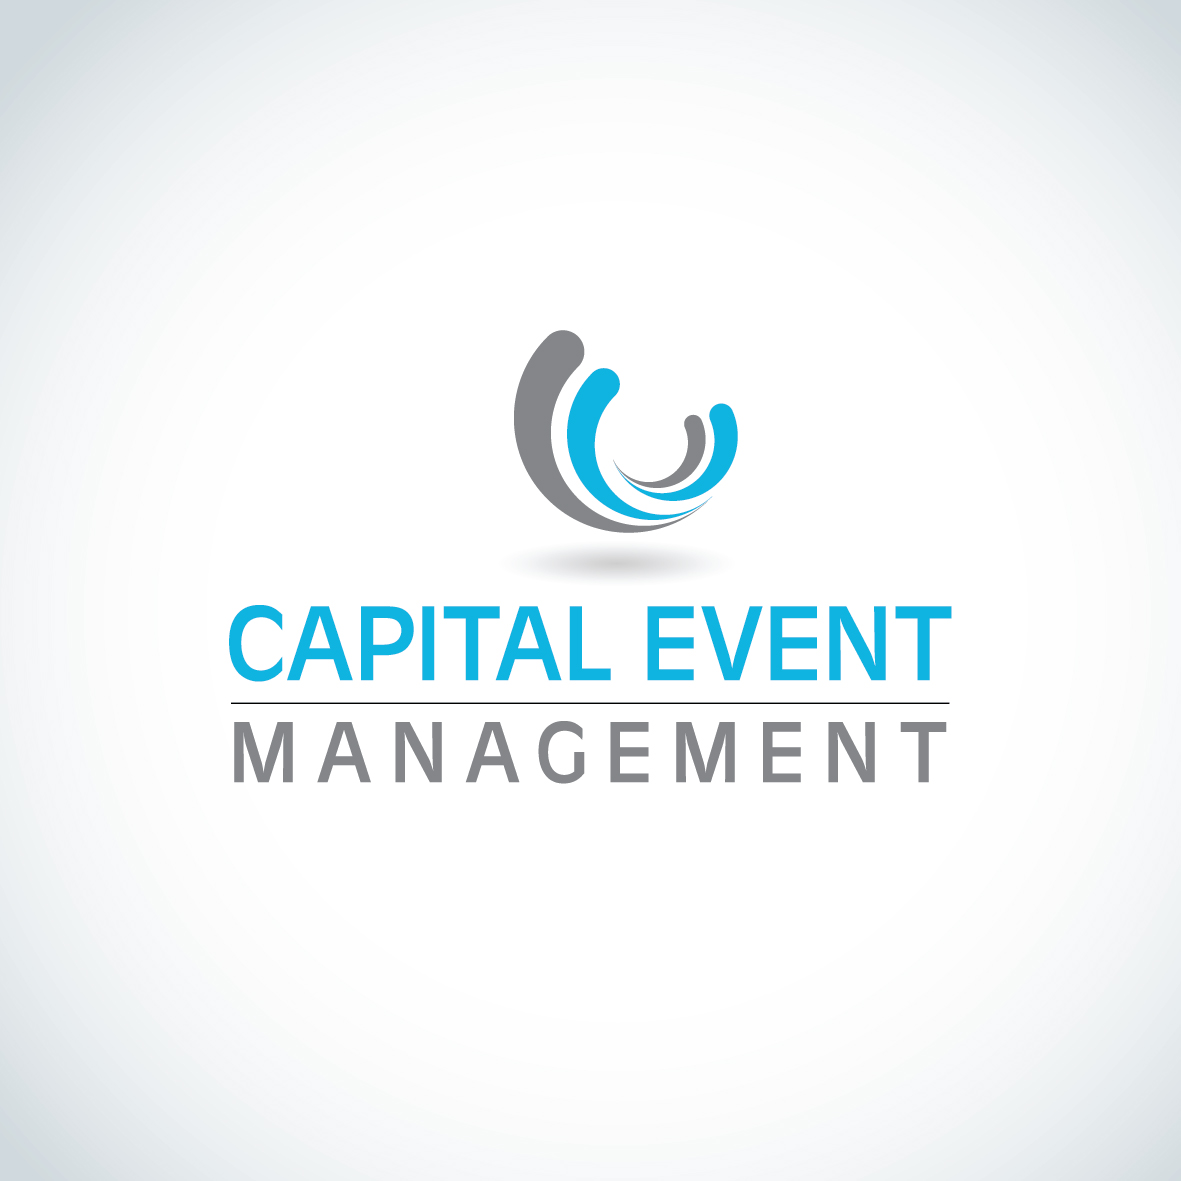 Logo Design by aesthetic-art - Entry No. 16 in the Logo Design Contest Capital Event Management.